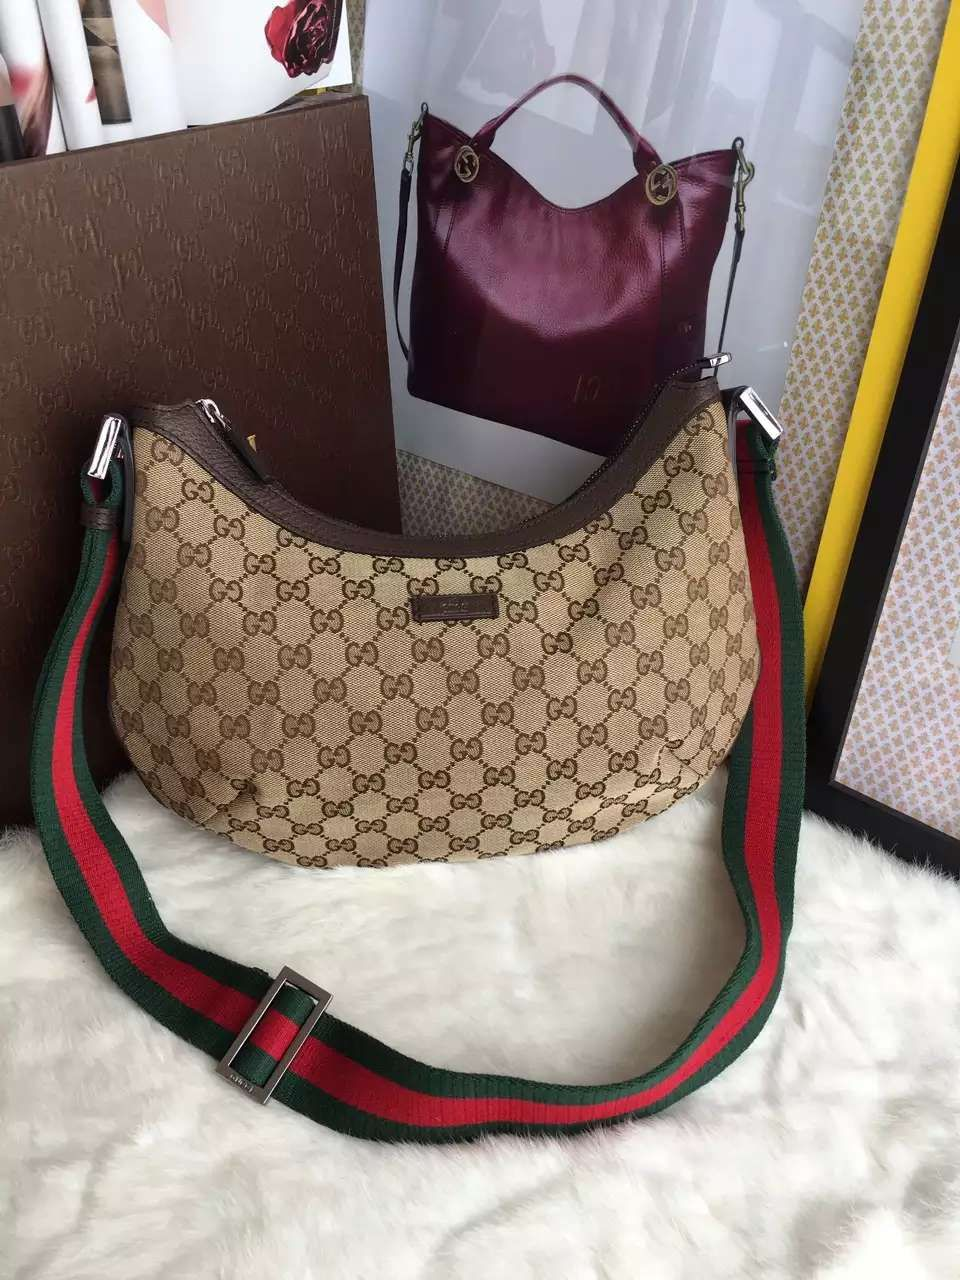 8d7c0cfff3f3c Gucci bag id forsale yybags designer handbags outlet prices creator of  stylish backpacks gucc also rh